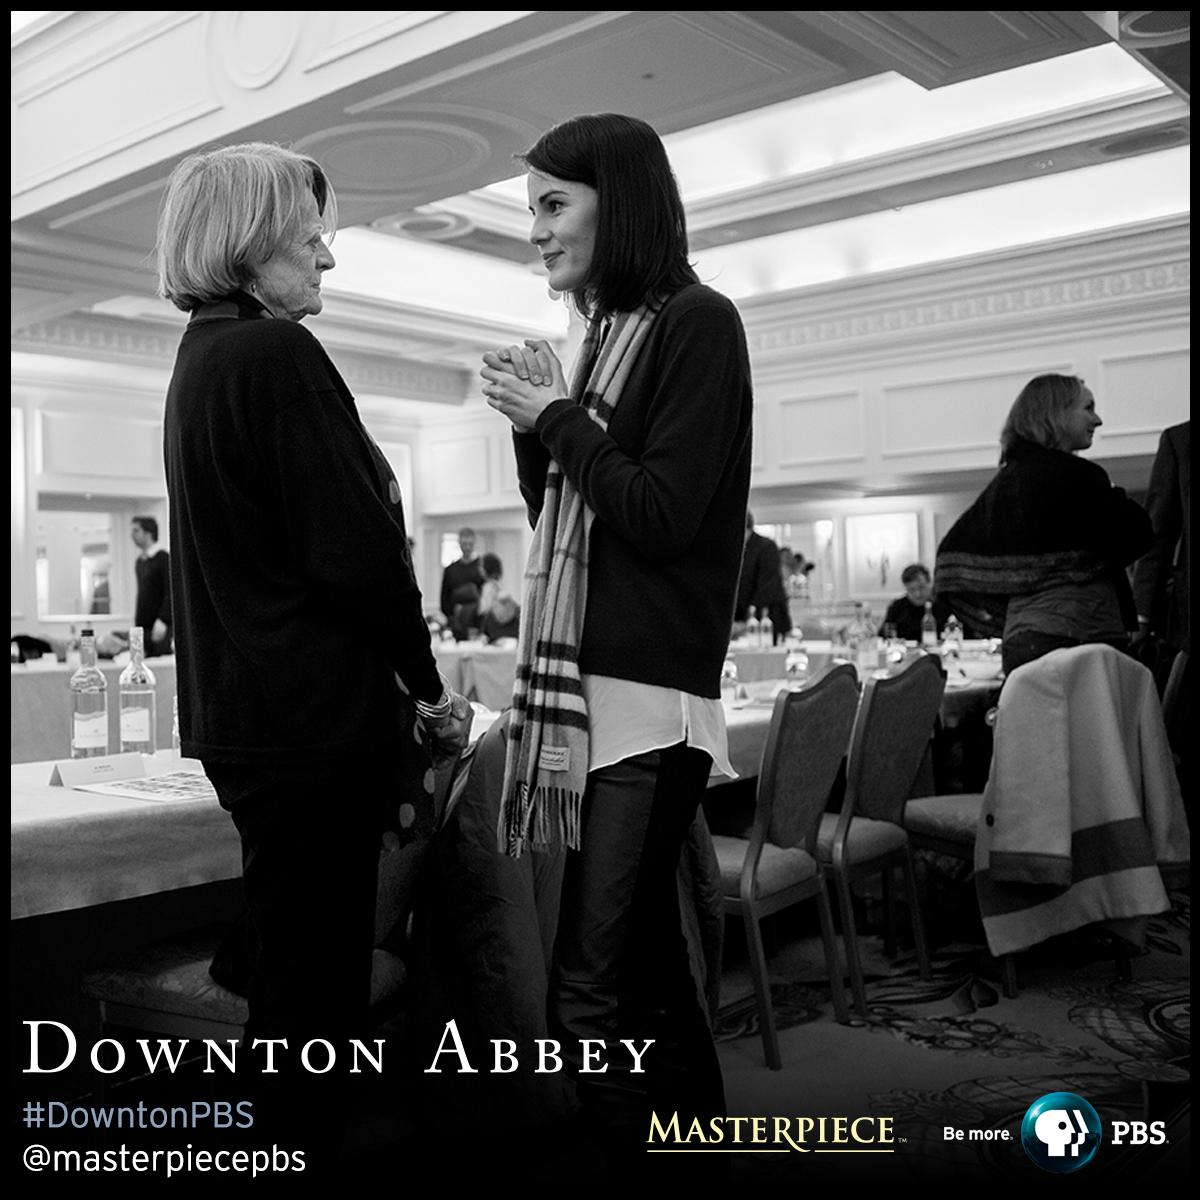 """It's official DowntonPBS Season 6 will be the final season. More info: http://t.co/sxu0WZP5rt @PBS http://t.co/yZ5K7ZdoY1"""" that's all folks✋"""